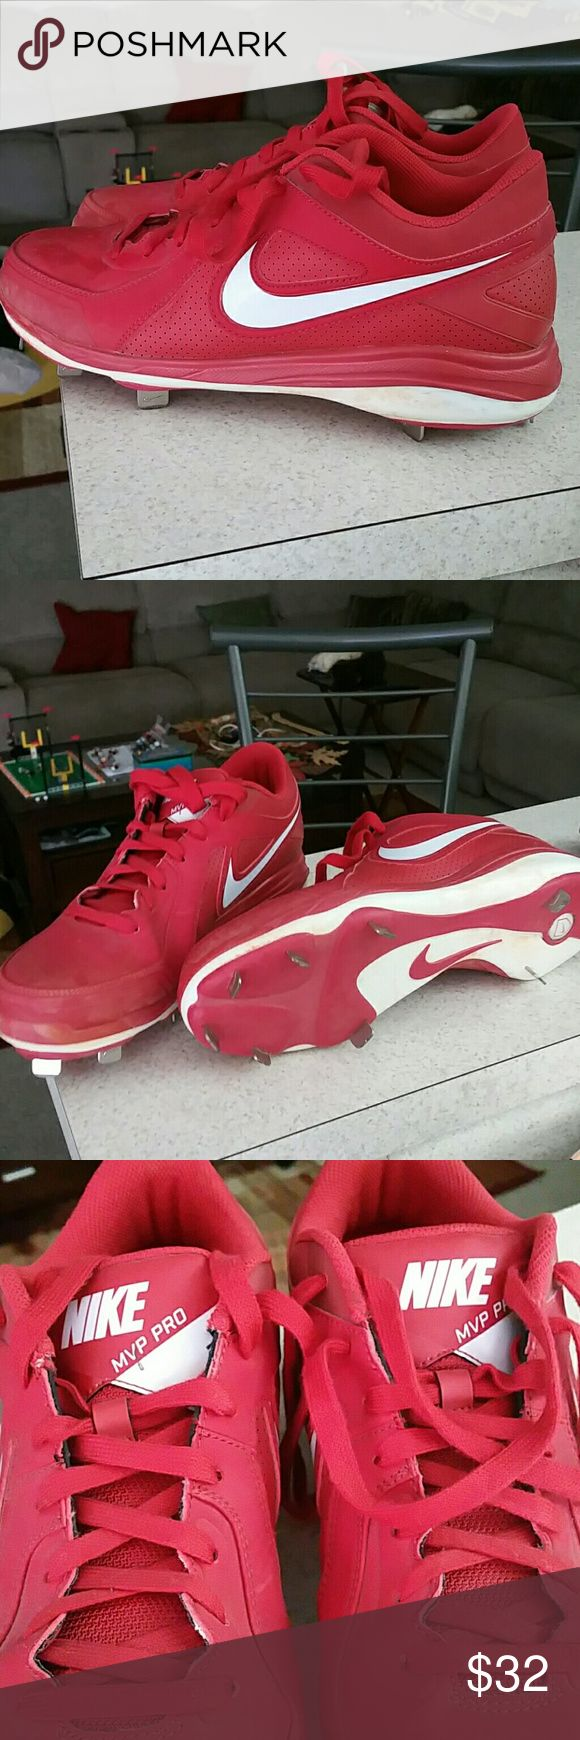 Nike MVP pro metal baseball cleats Nike Red Nike MVP Pro metal baseball cleats Nike Shoes